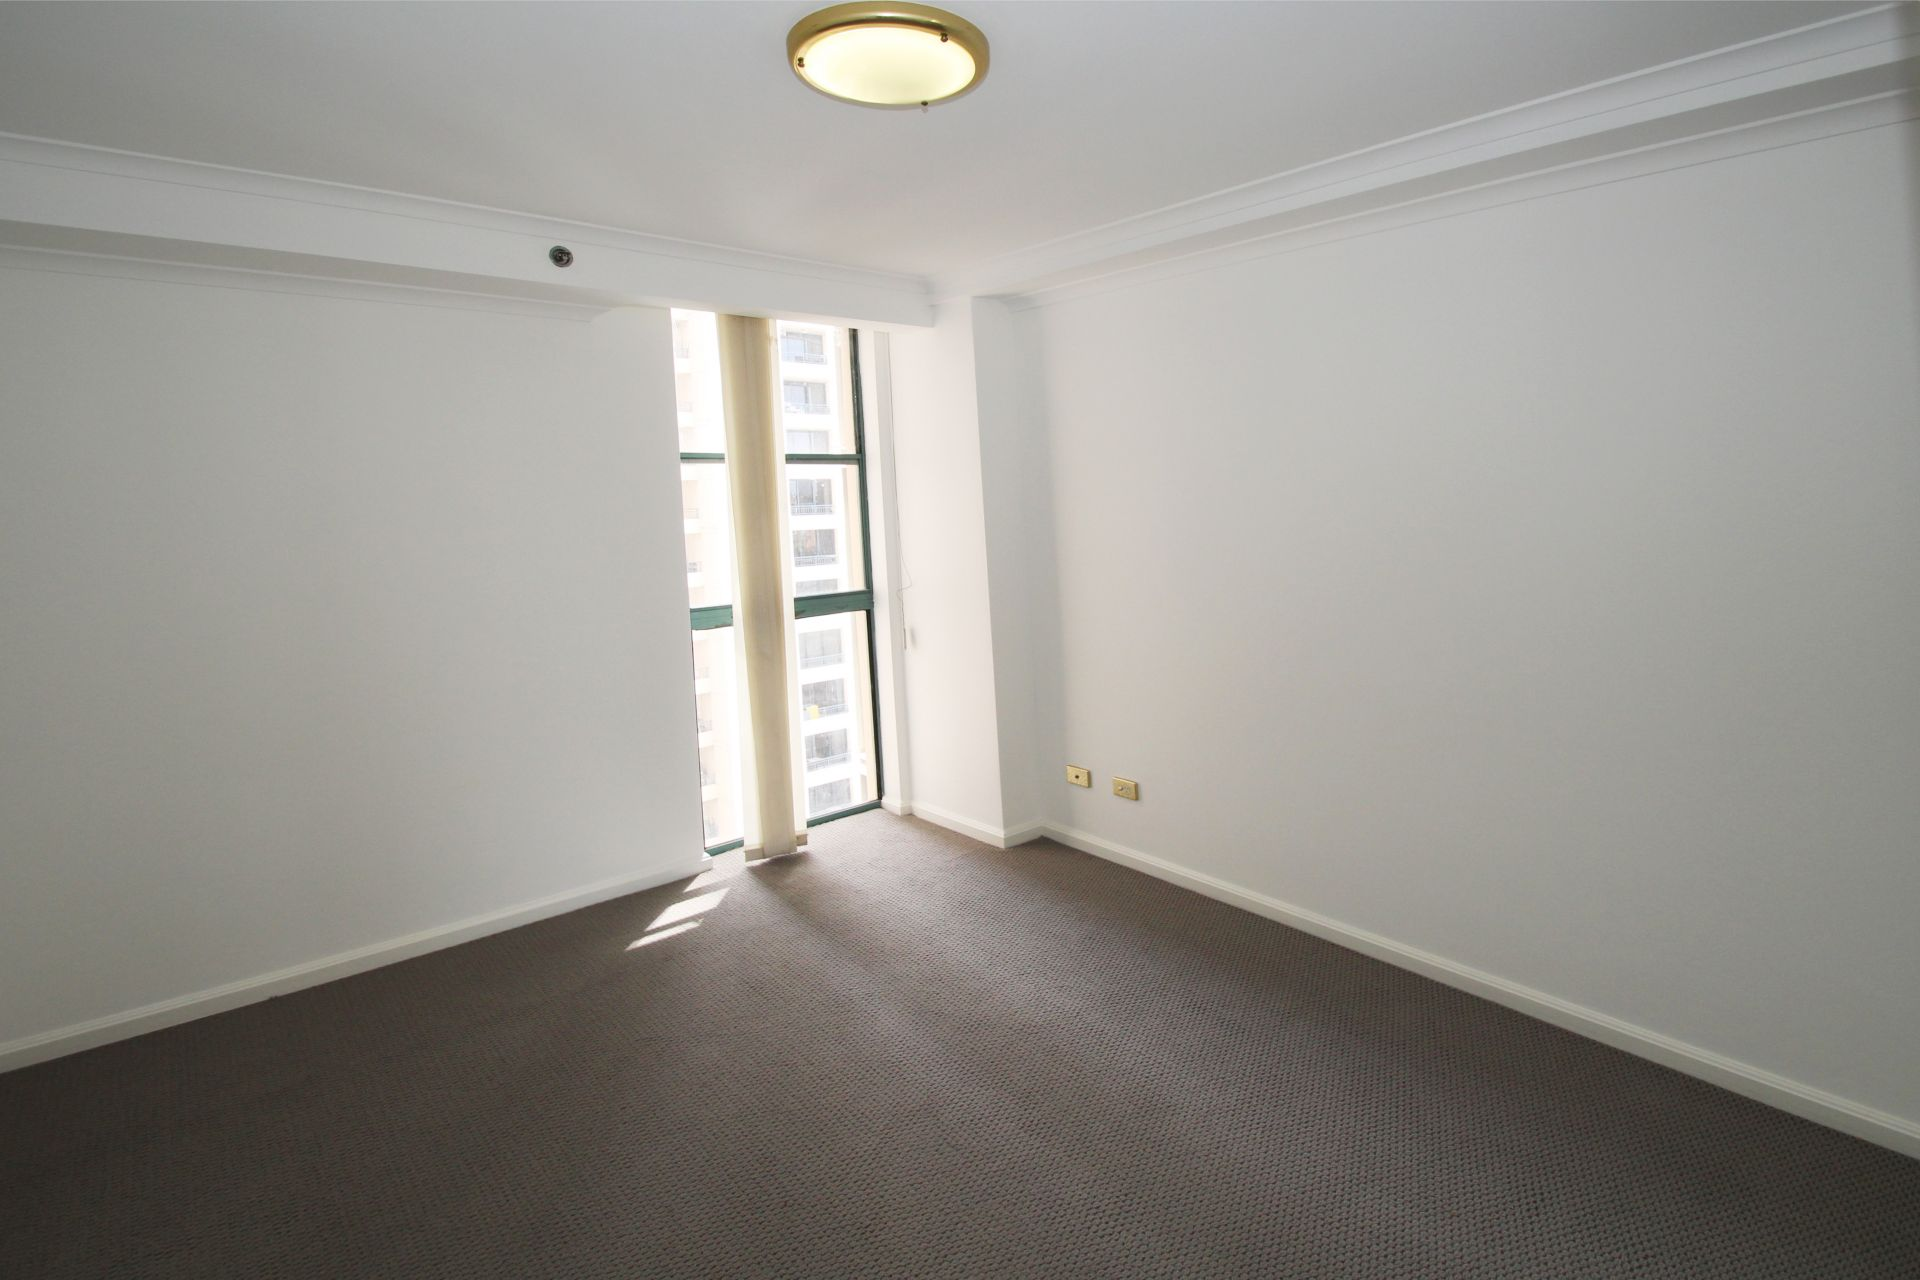 SPACIOUS 2 BEDROOM APARTMENT RIGHT IN THE HEART OF THE CBD